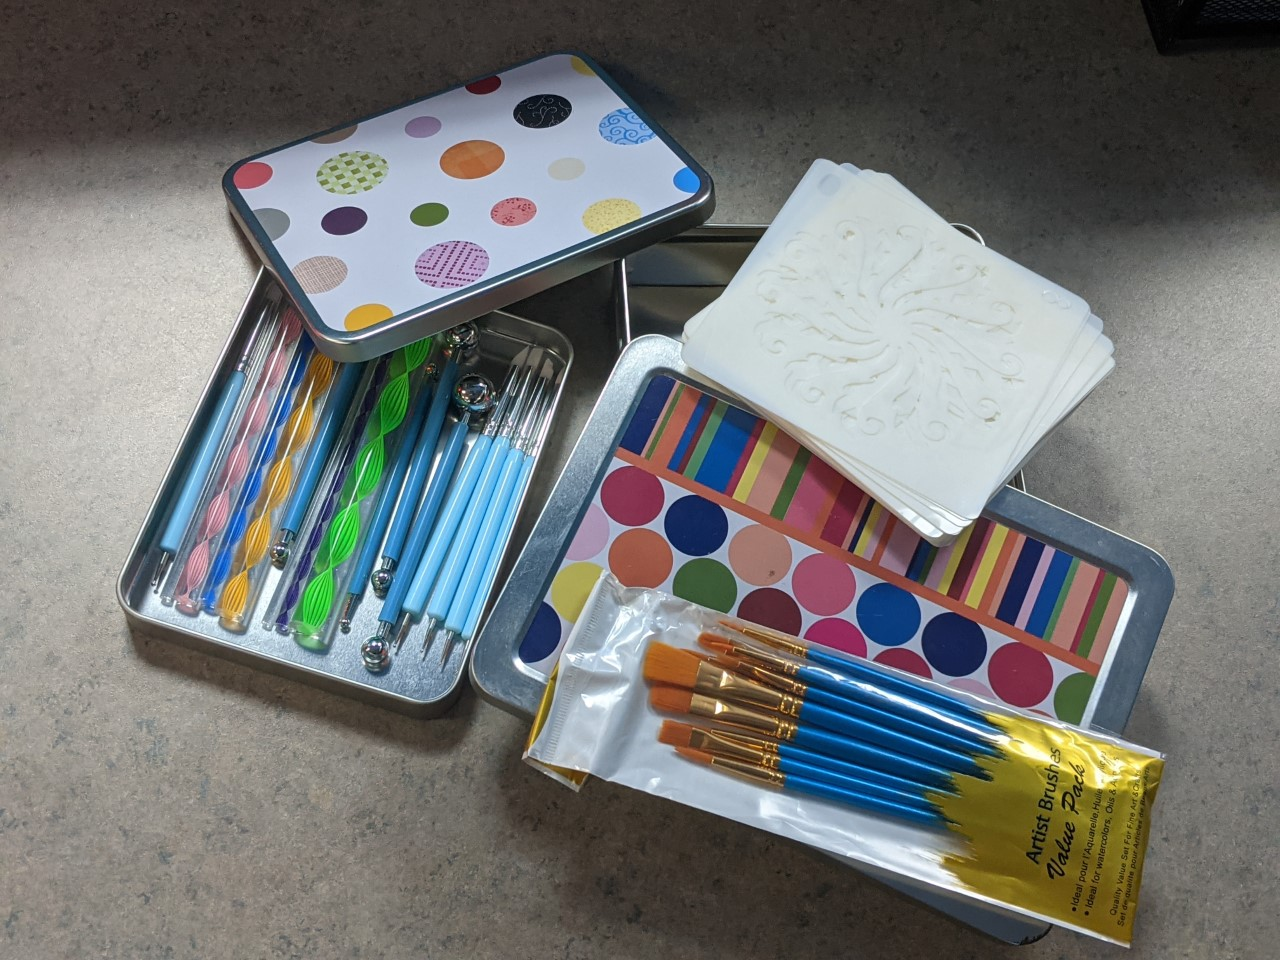 Image of the Mandala kit available for checkout at our library